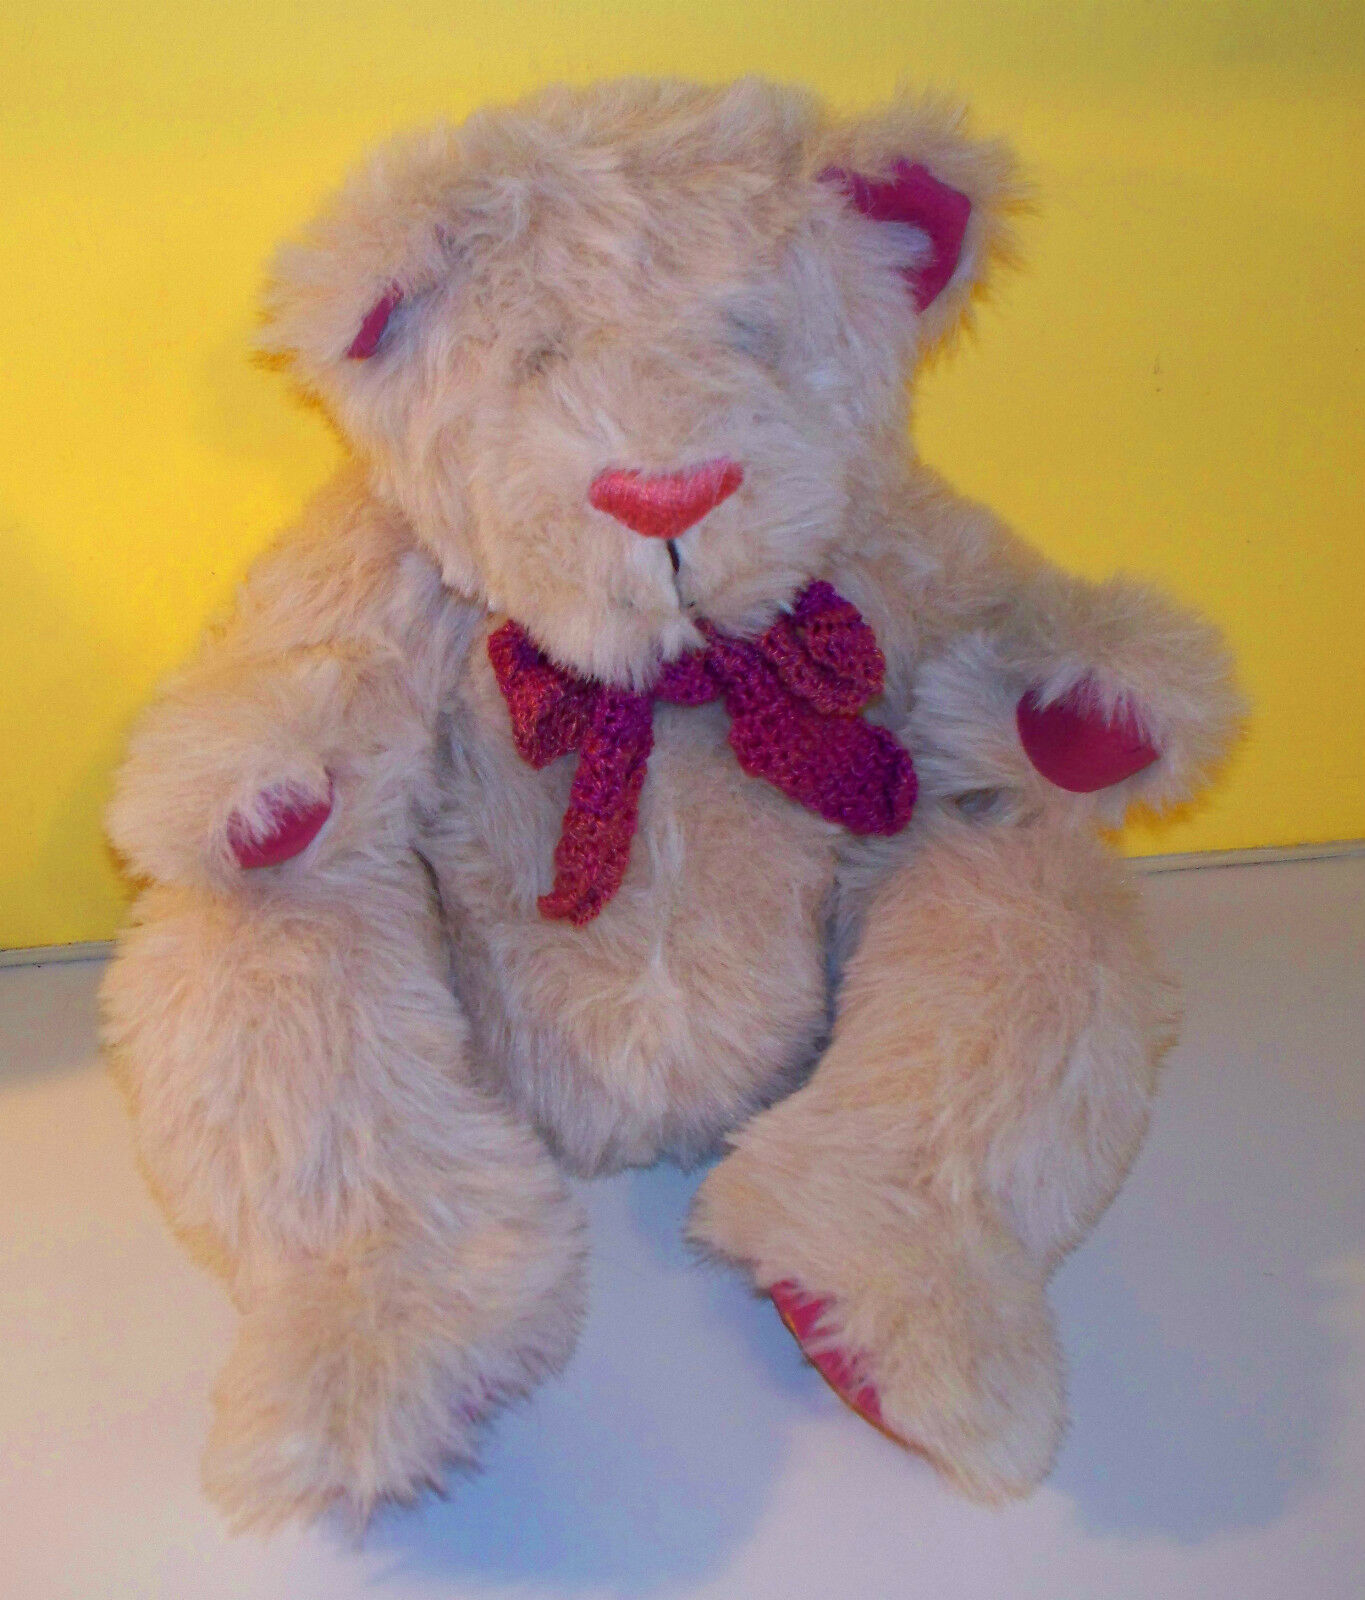 Fully Jointed Shaggy Shaggy Shaggy Blonde Teddy Bear Flowers On FeetPlush Stuffed Animal a660ea